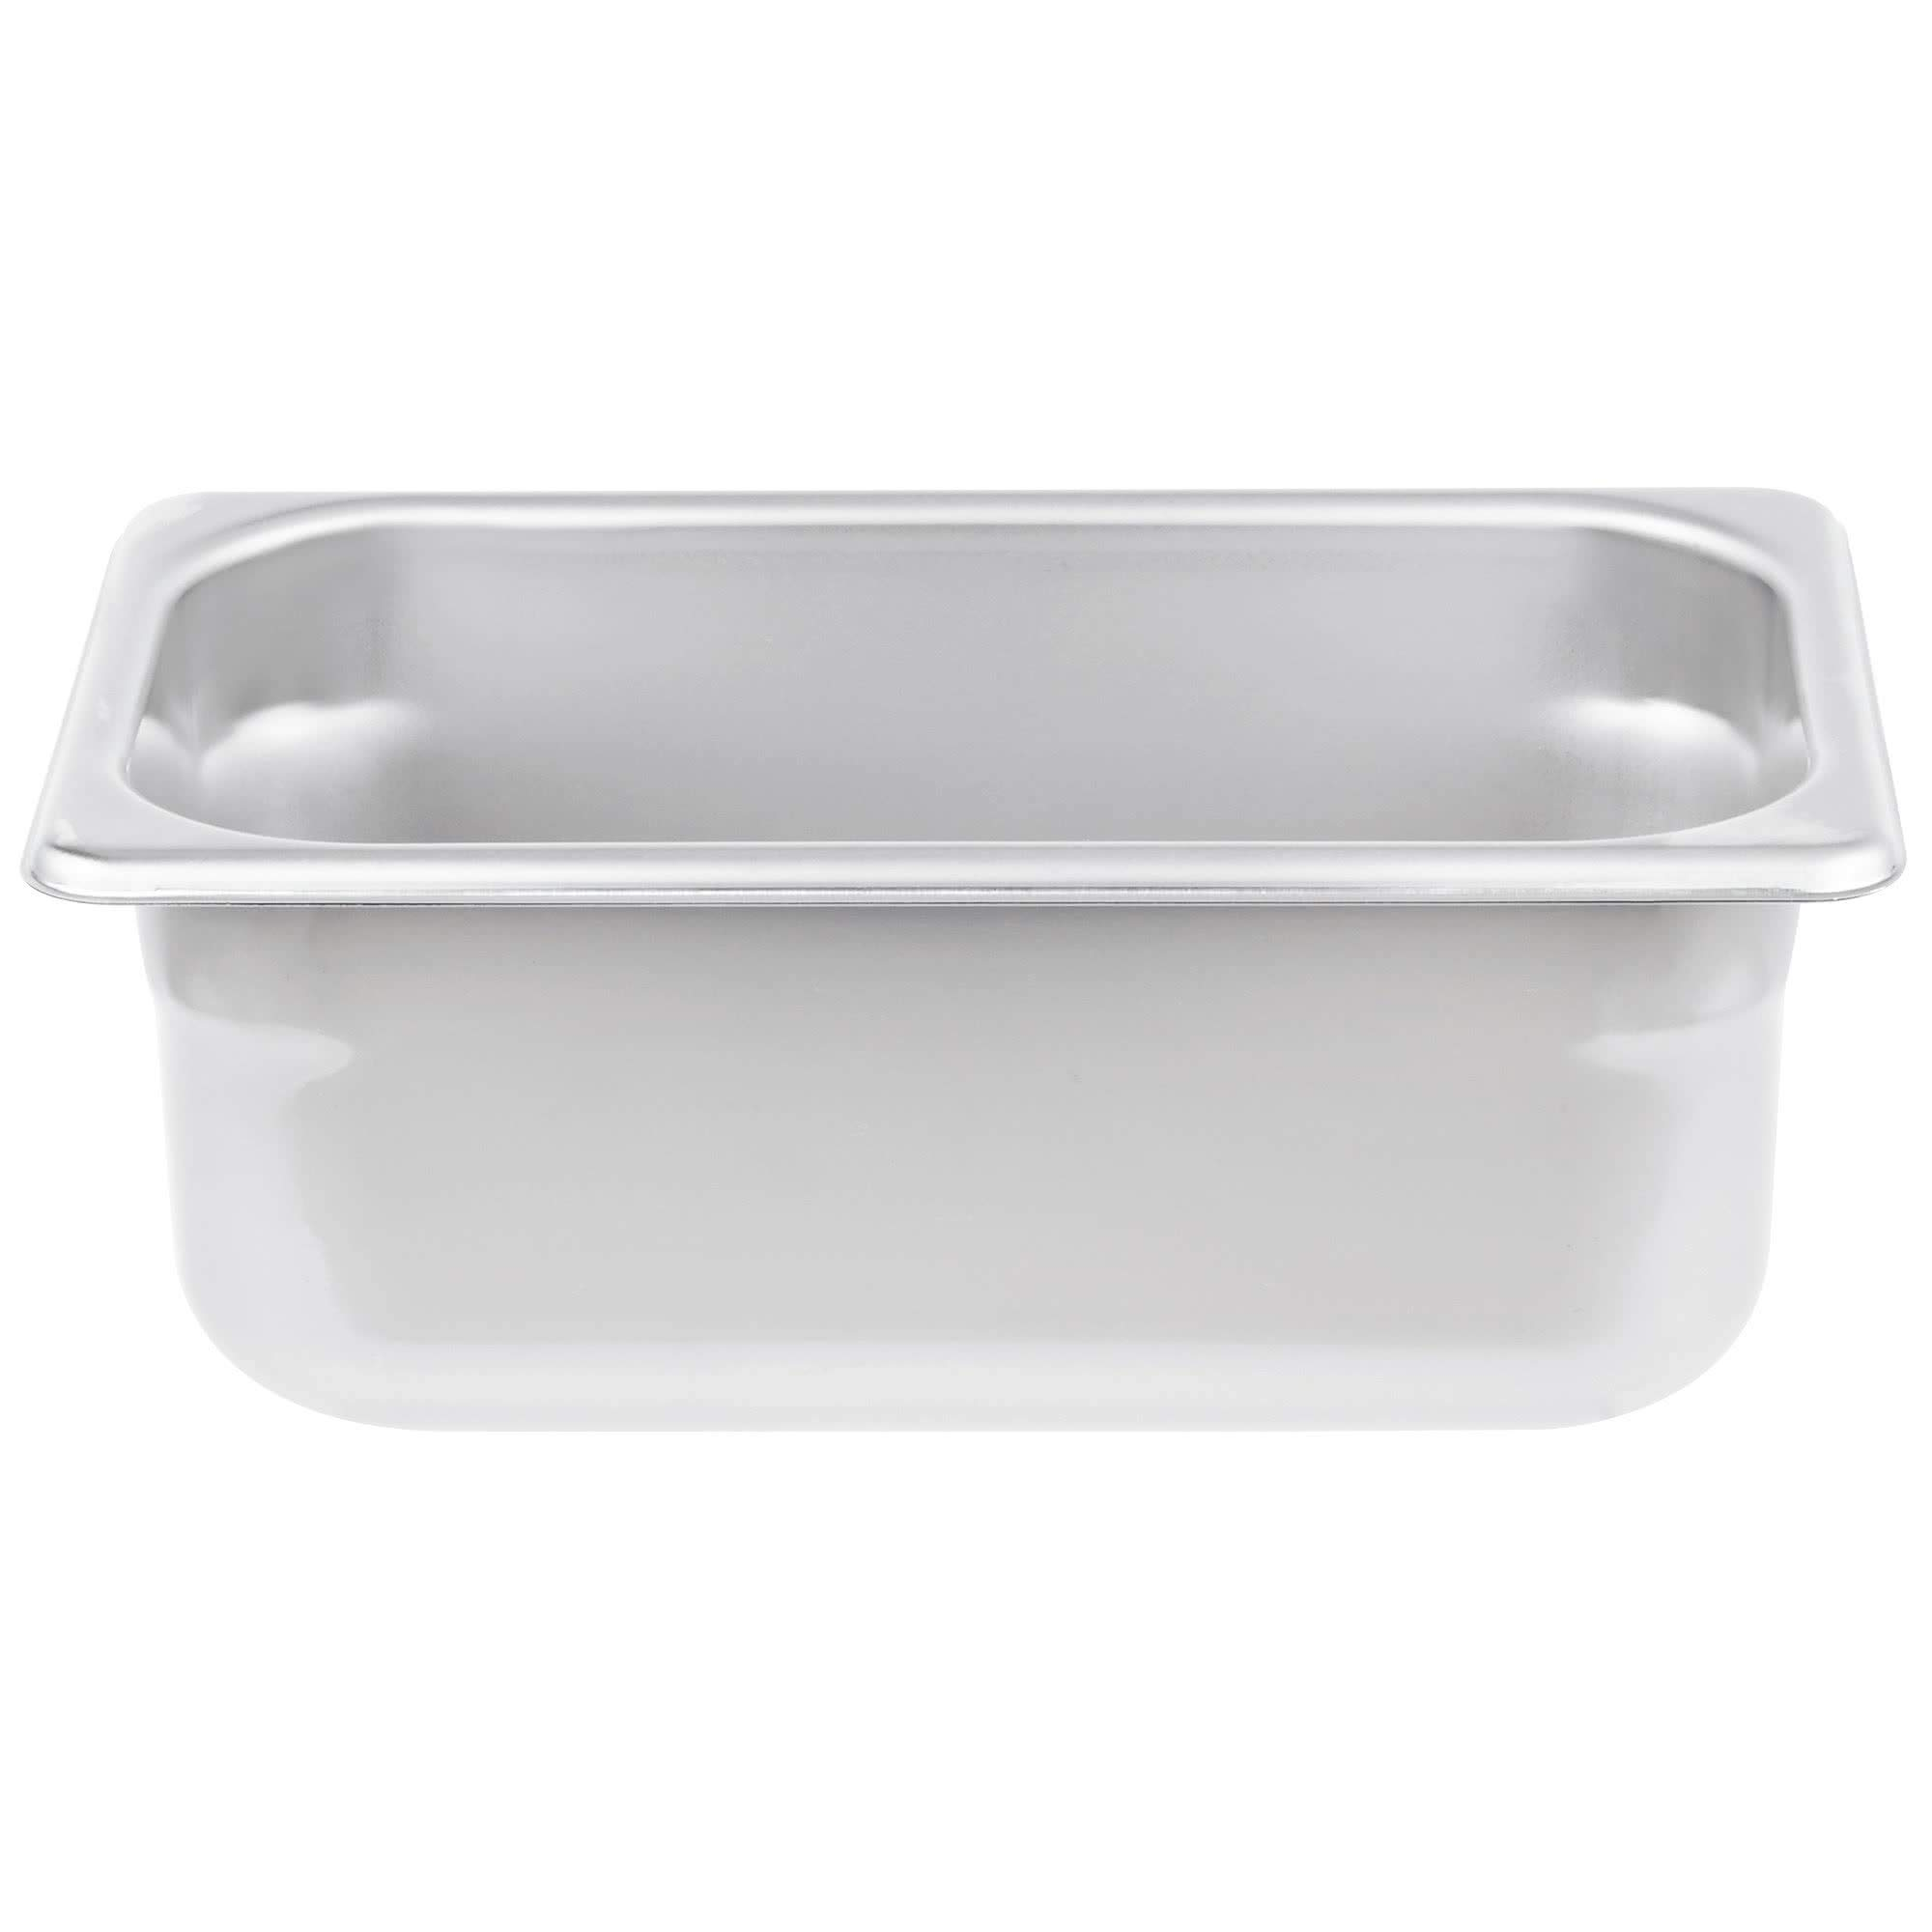 TableTop King S10064 Super Pan Heavy-Duty 1/4 Size Anti-Jam Stainless Steel Steam Table/Hotel Pan - 4'' Deep by TableTop King